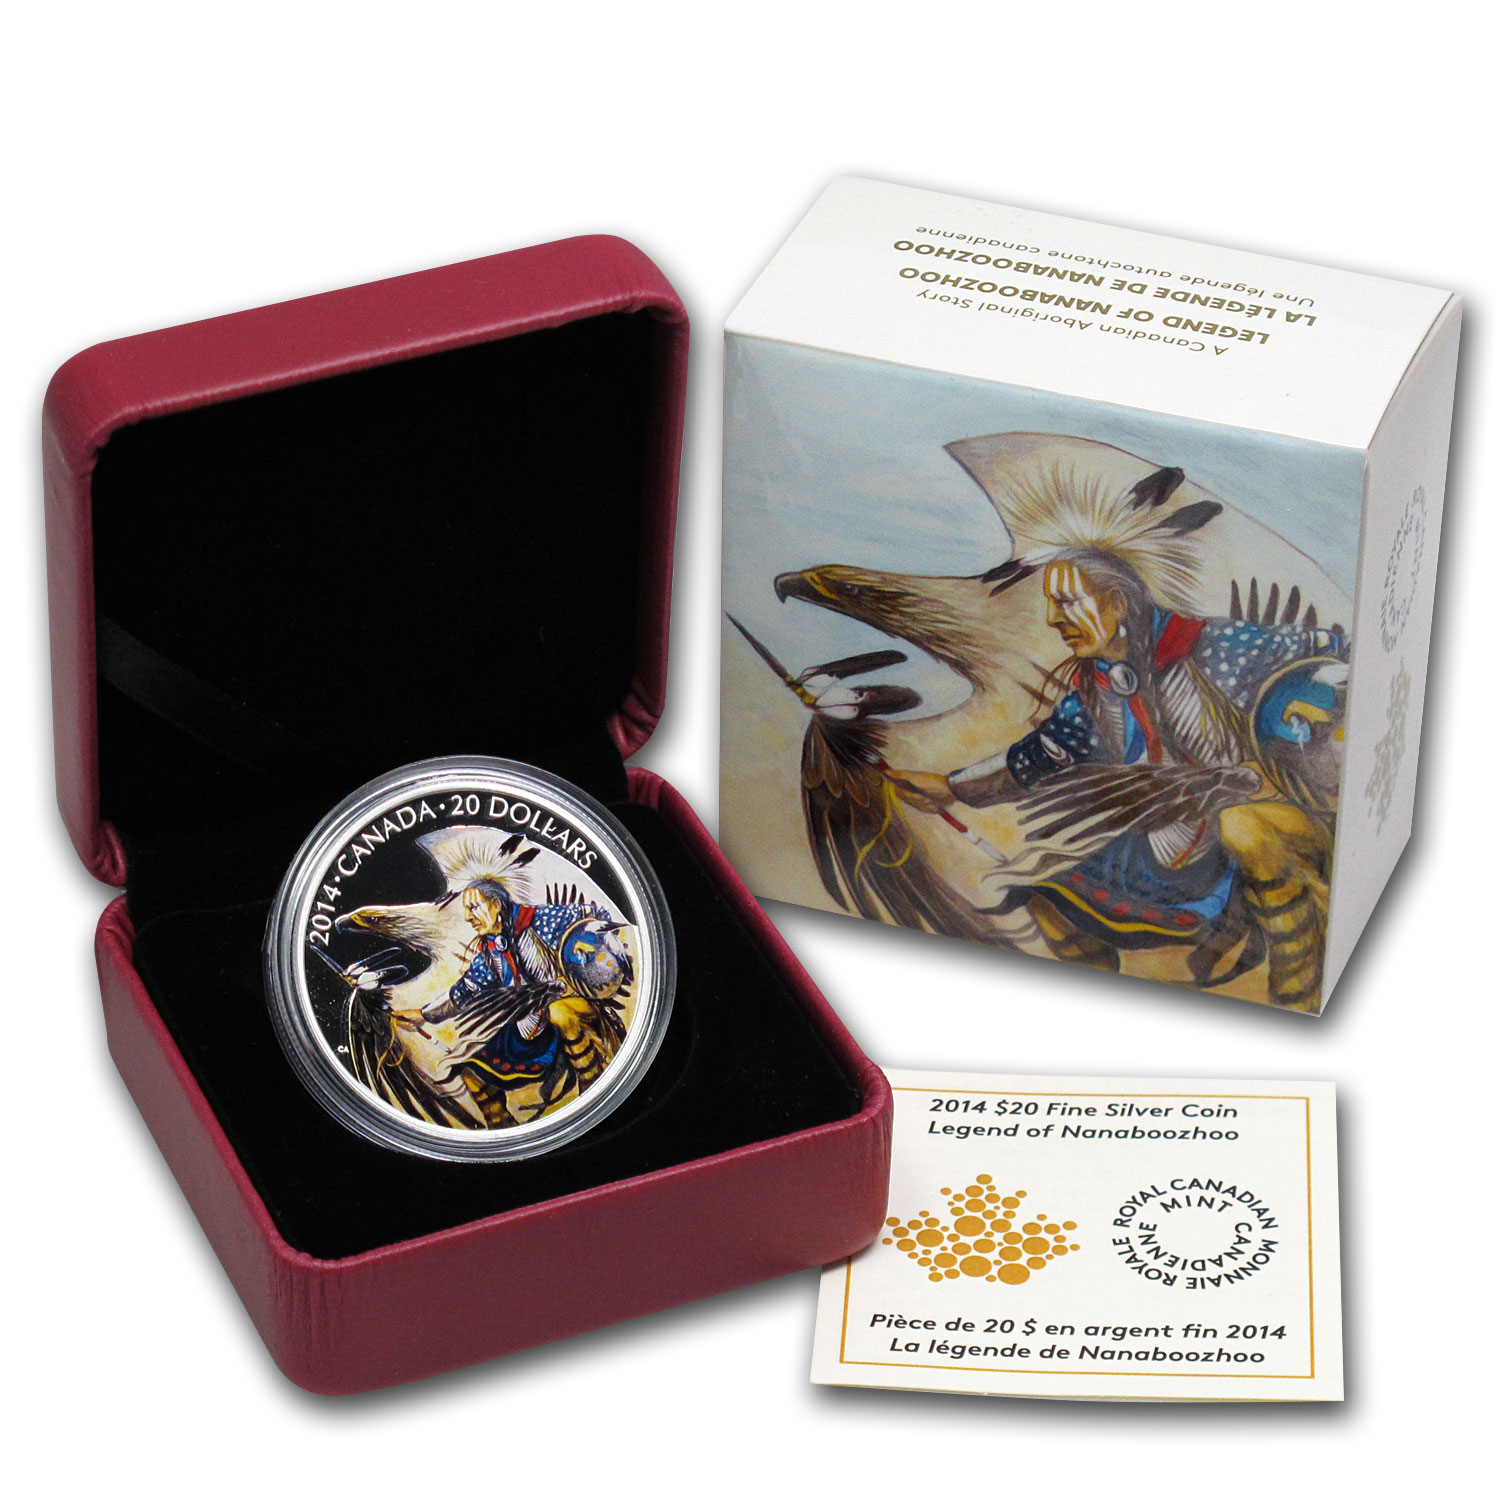 2014 1 oz Silver Canadian $20 Legend of Nanaboozhoo (W/Box & COA)